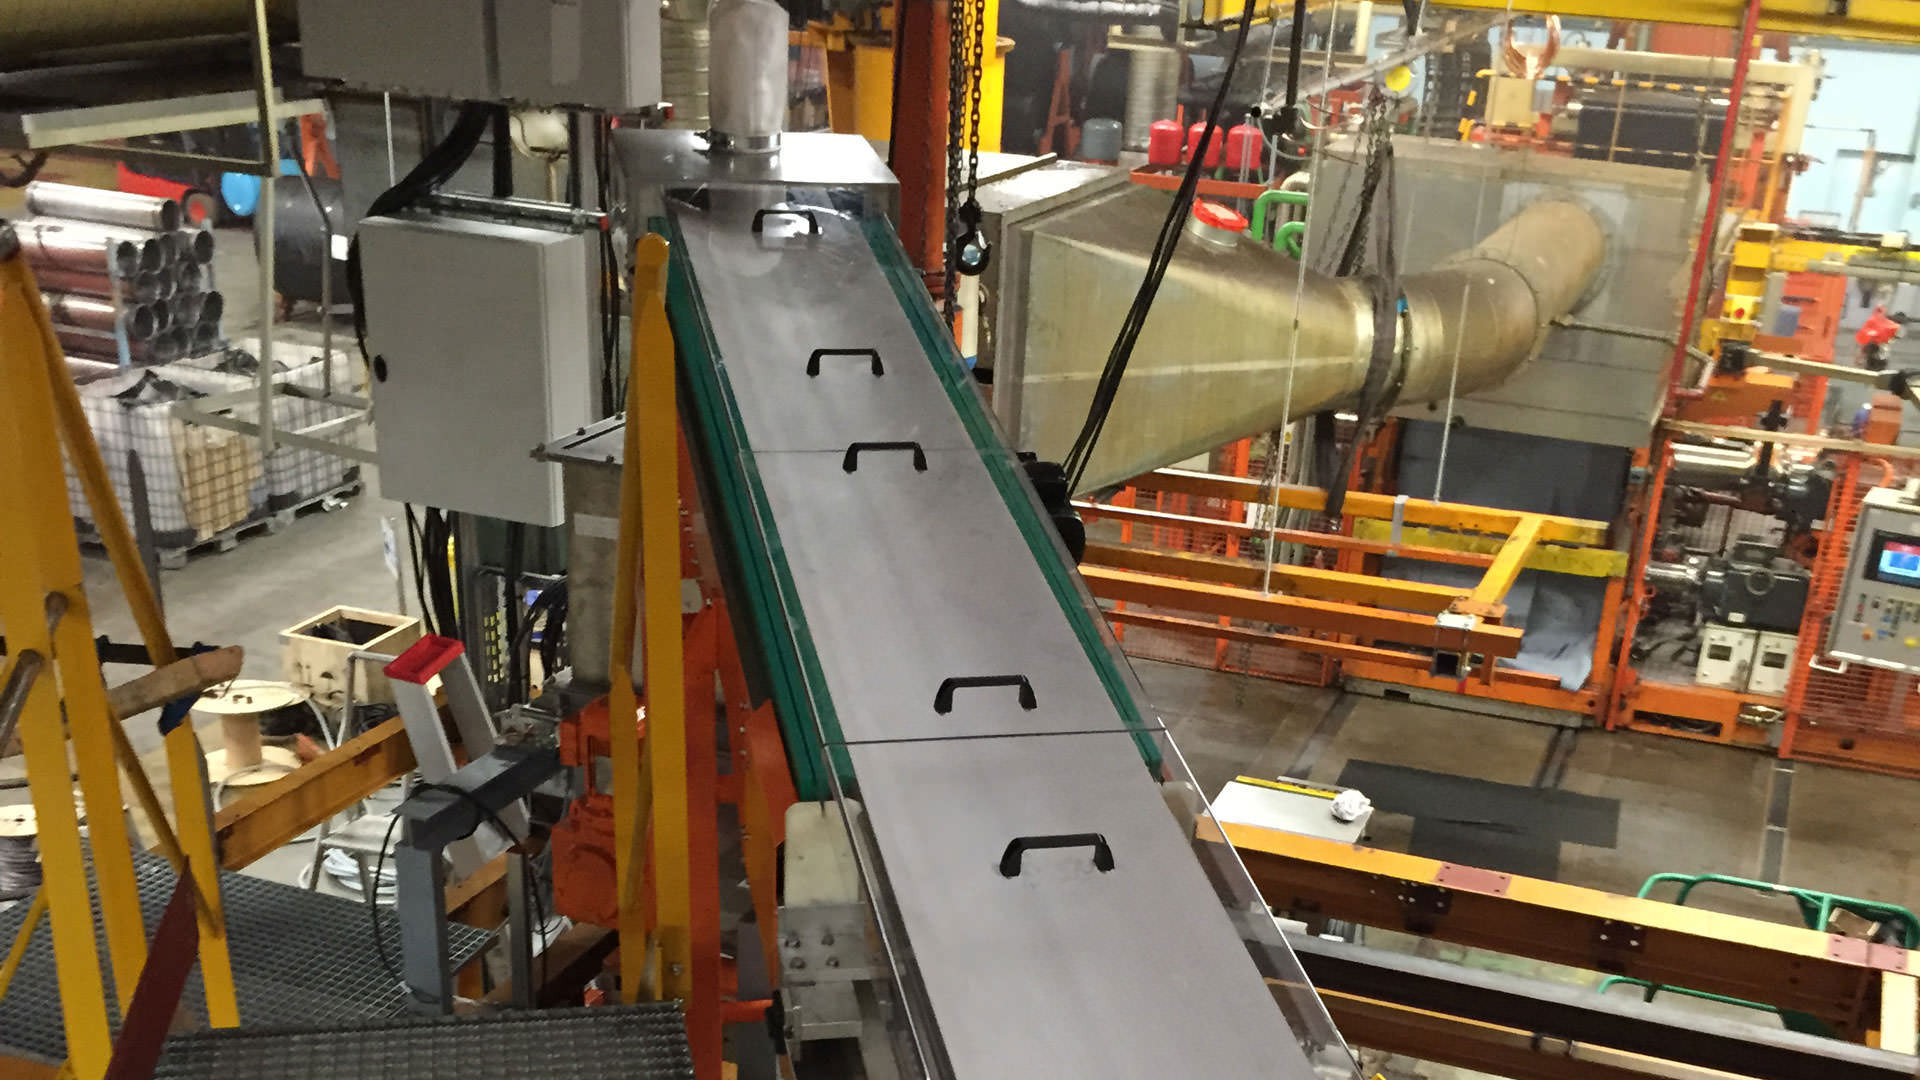 Powder conveyors